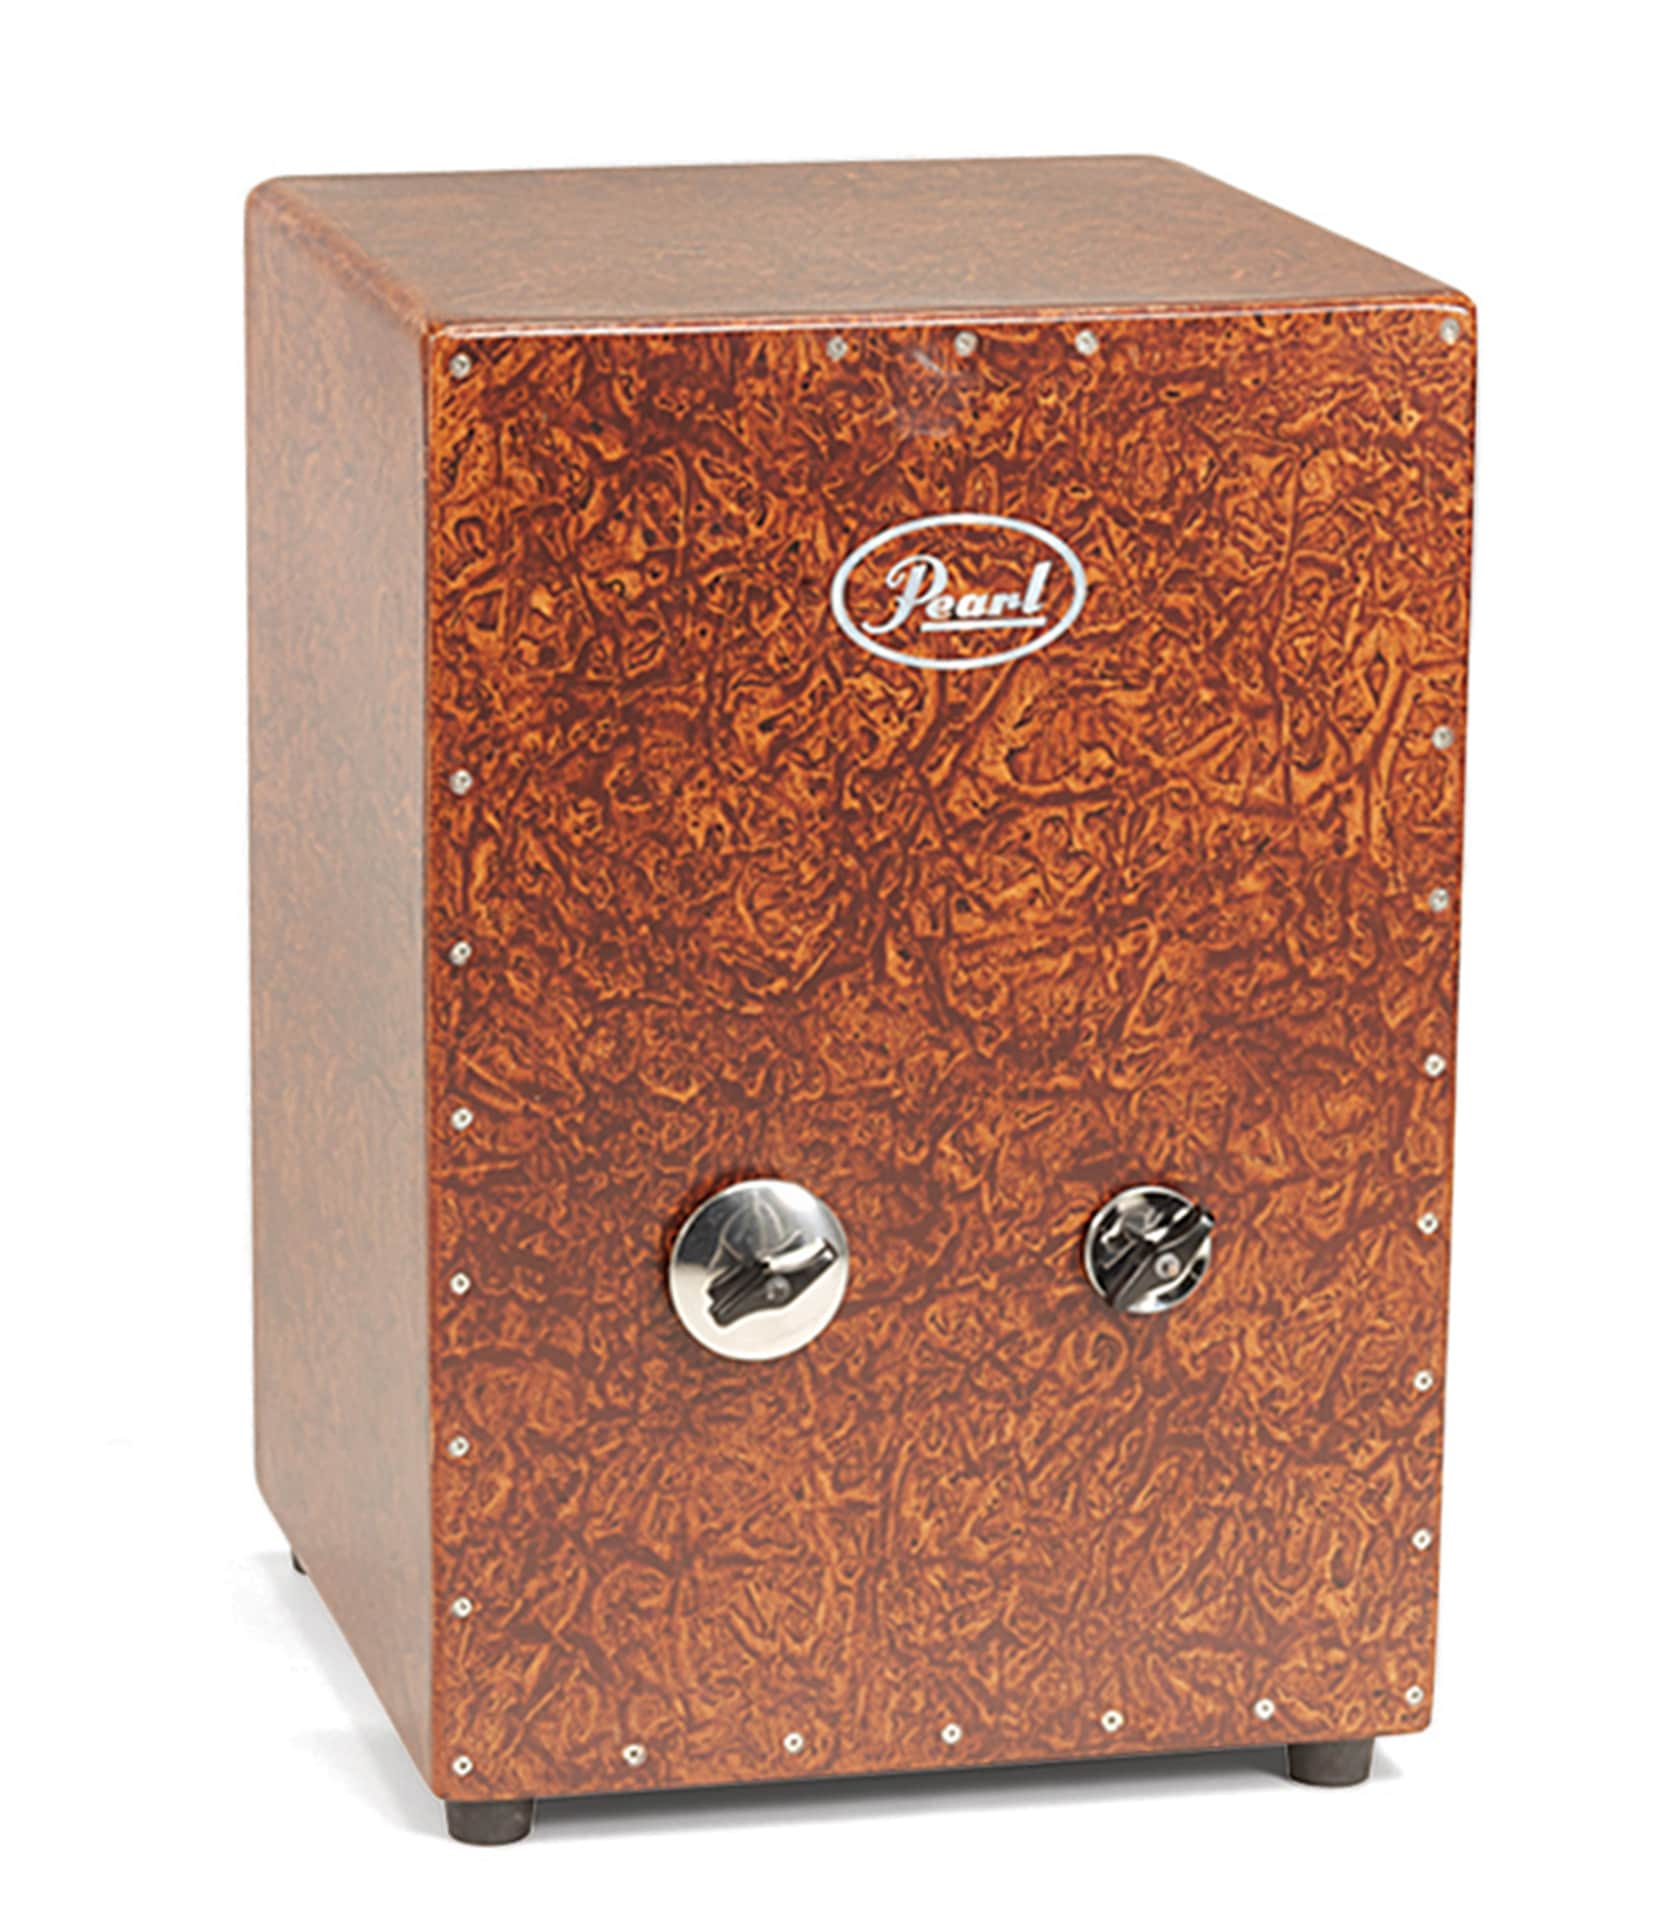 Buy pearl - PCJ 629Jingle Cajon